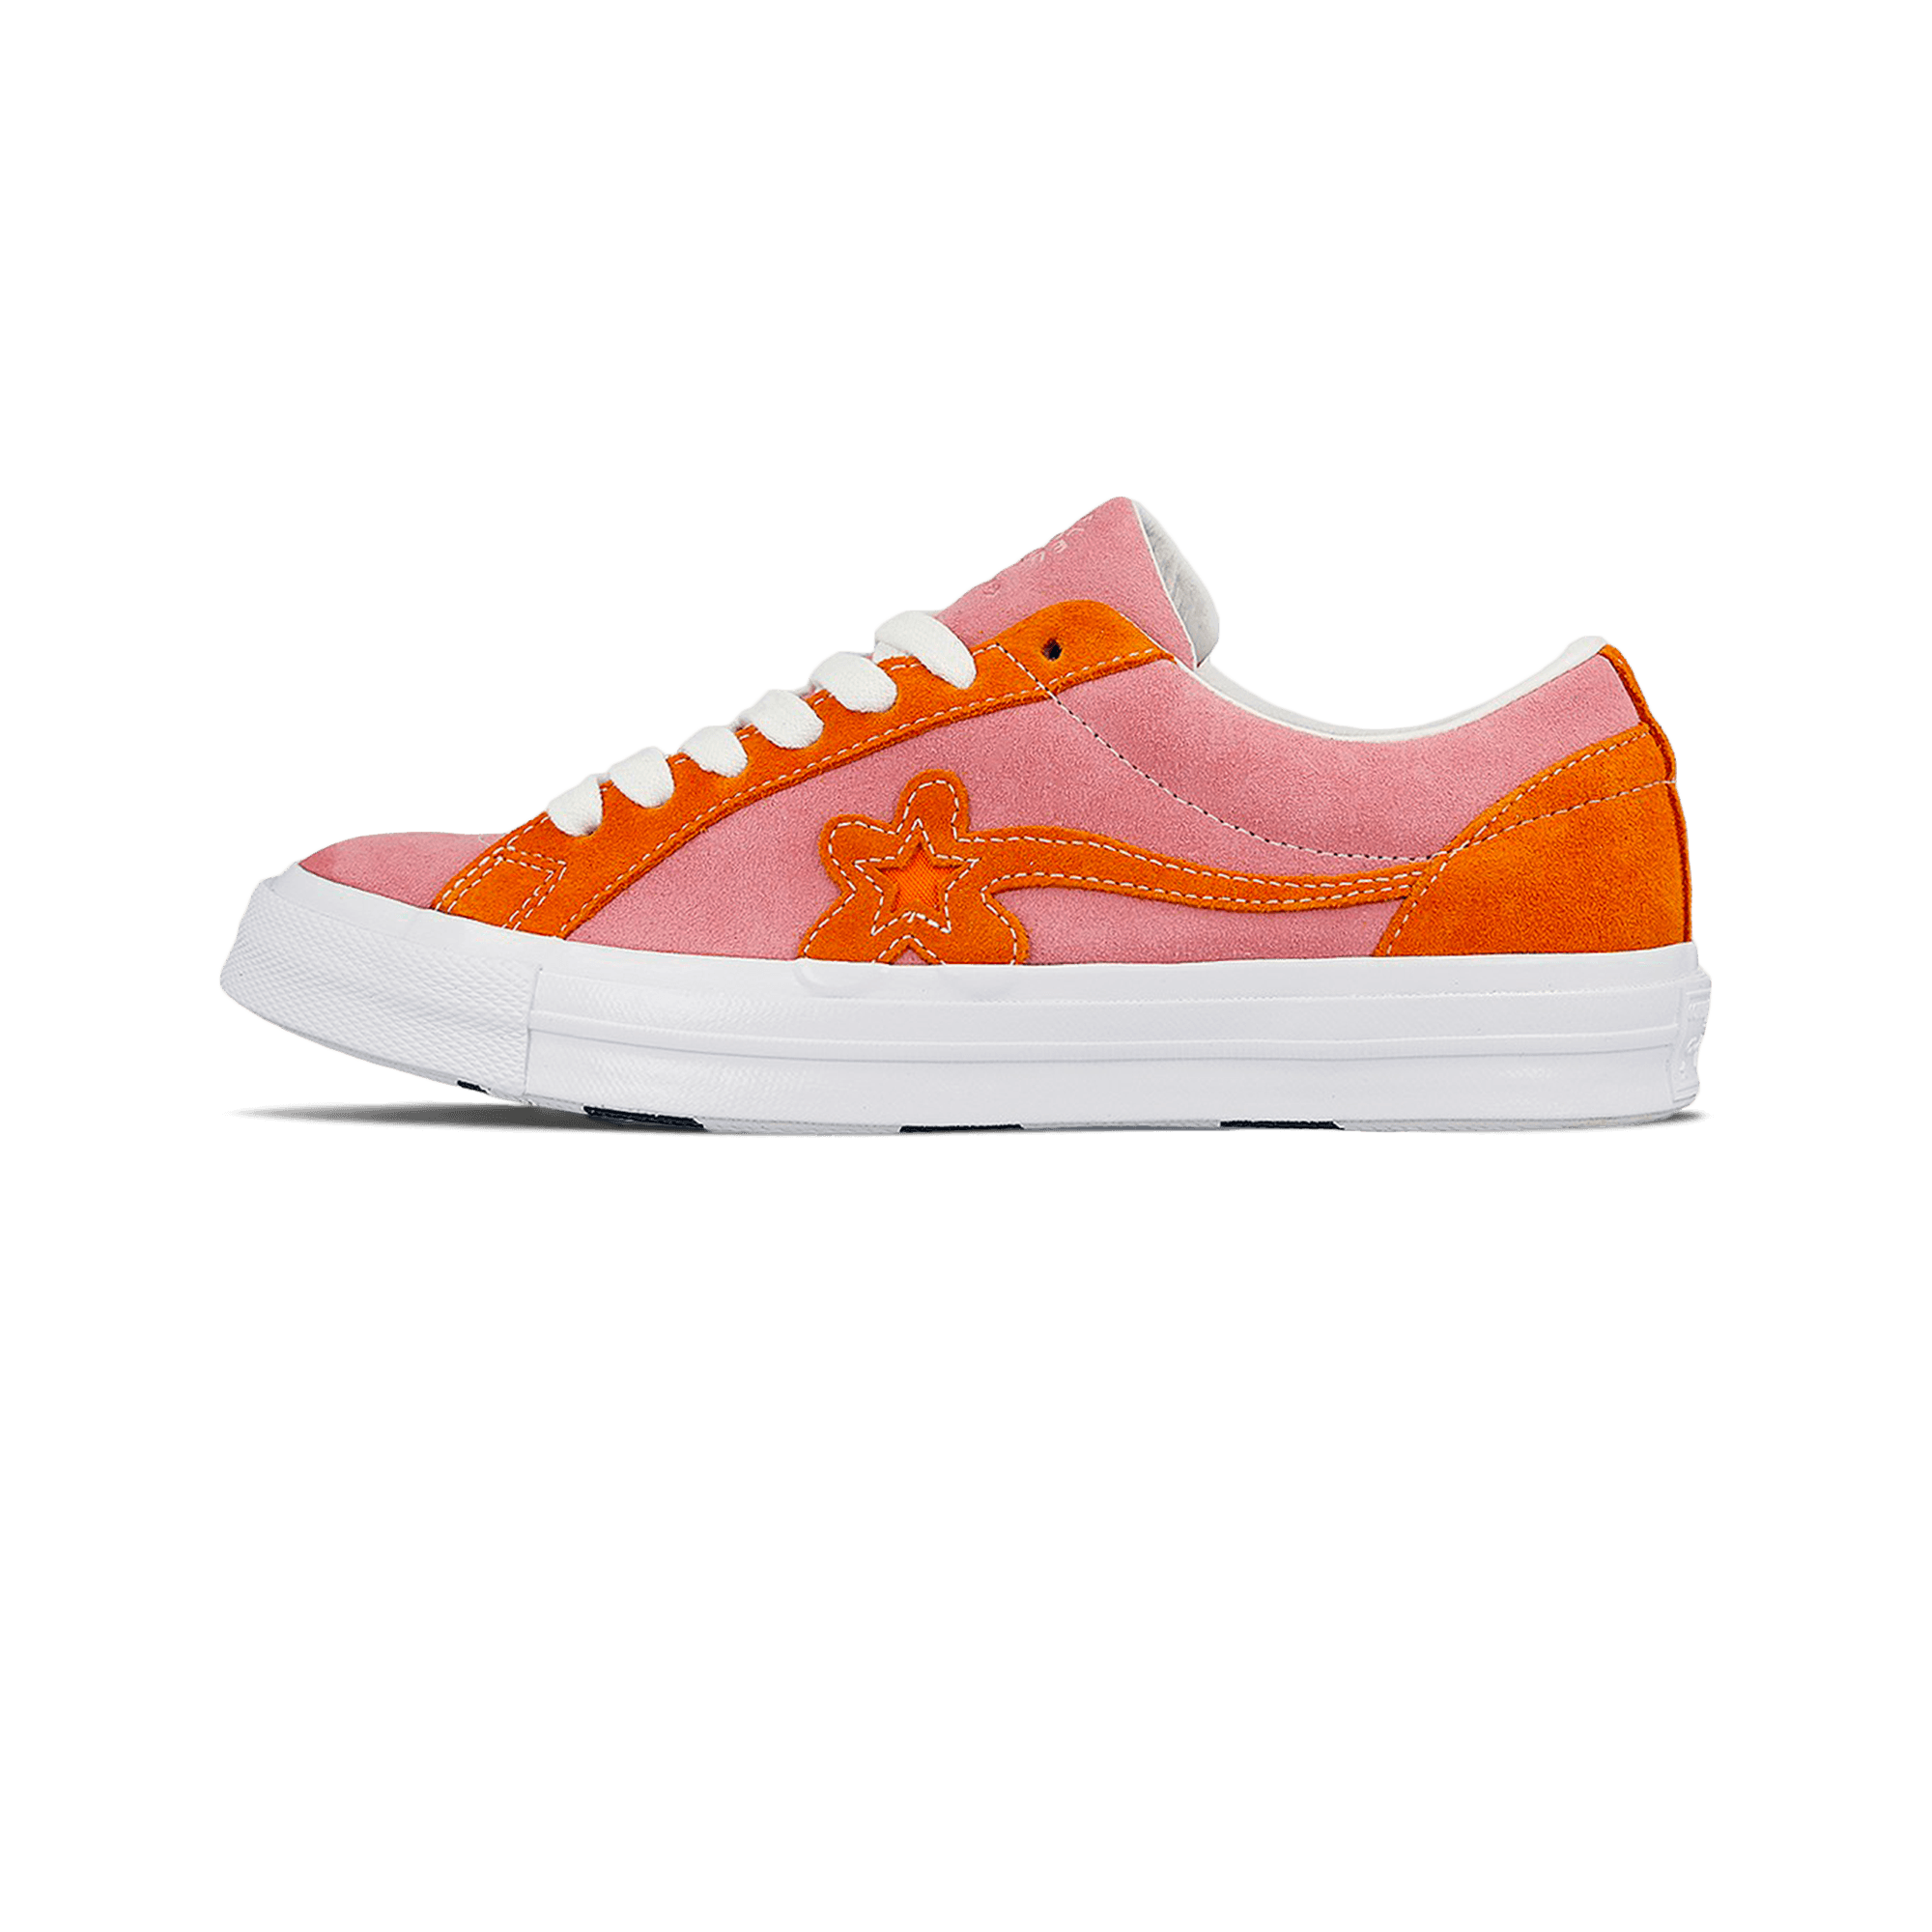 size 7 fast delivery where to buy Converse One Star x Golf Le Fleur candy pink / orange peel - Uomo    Holypopstore.com